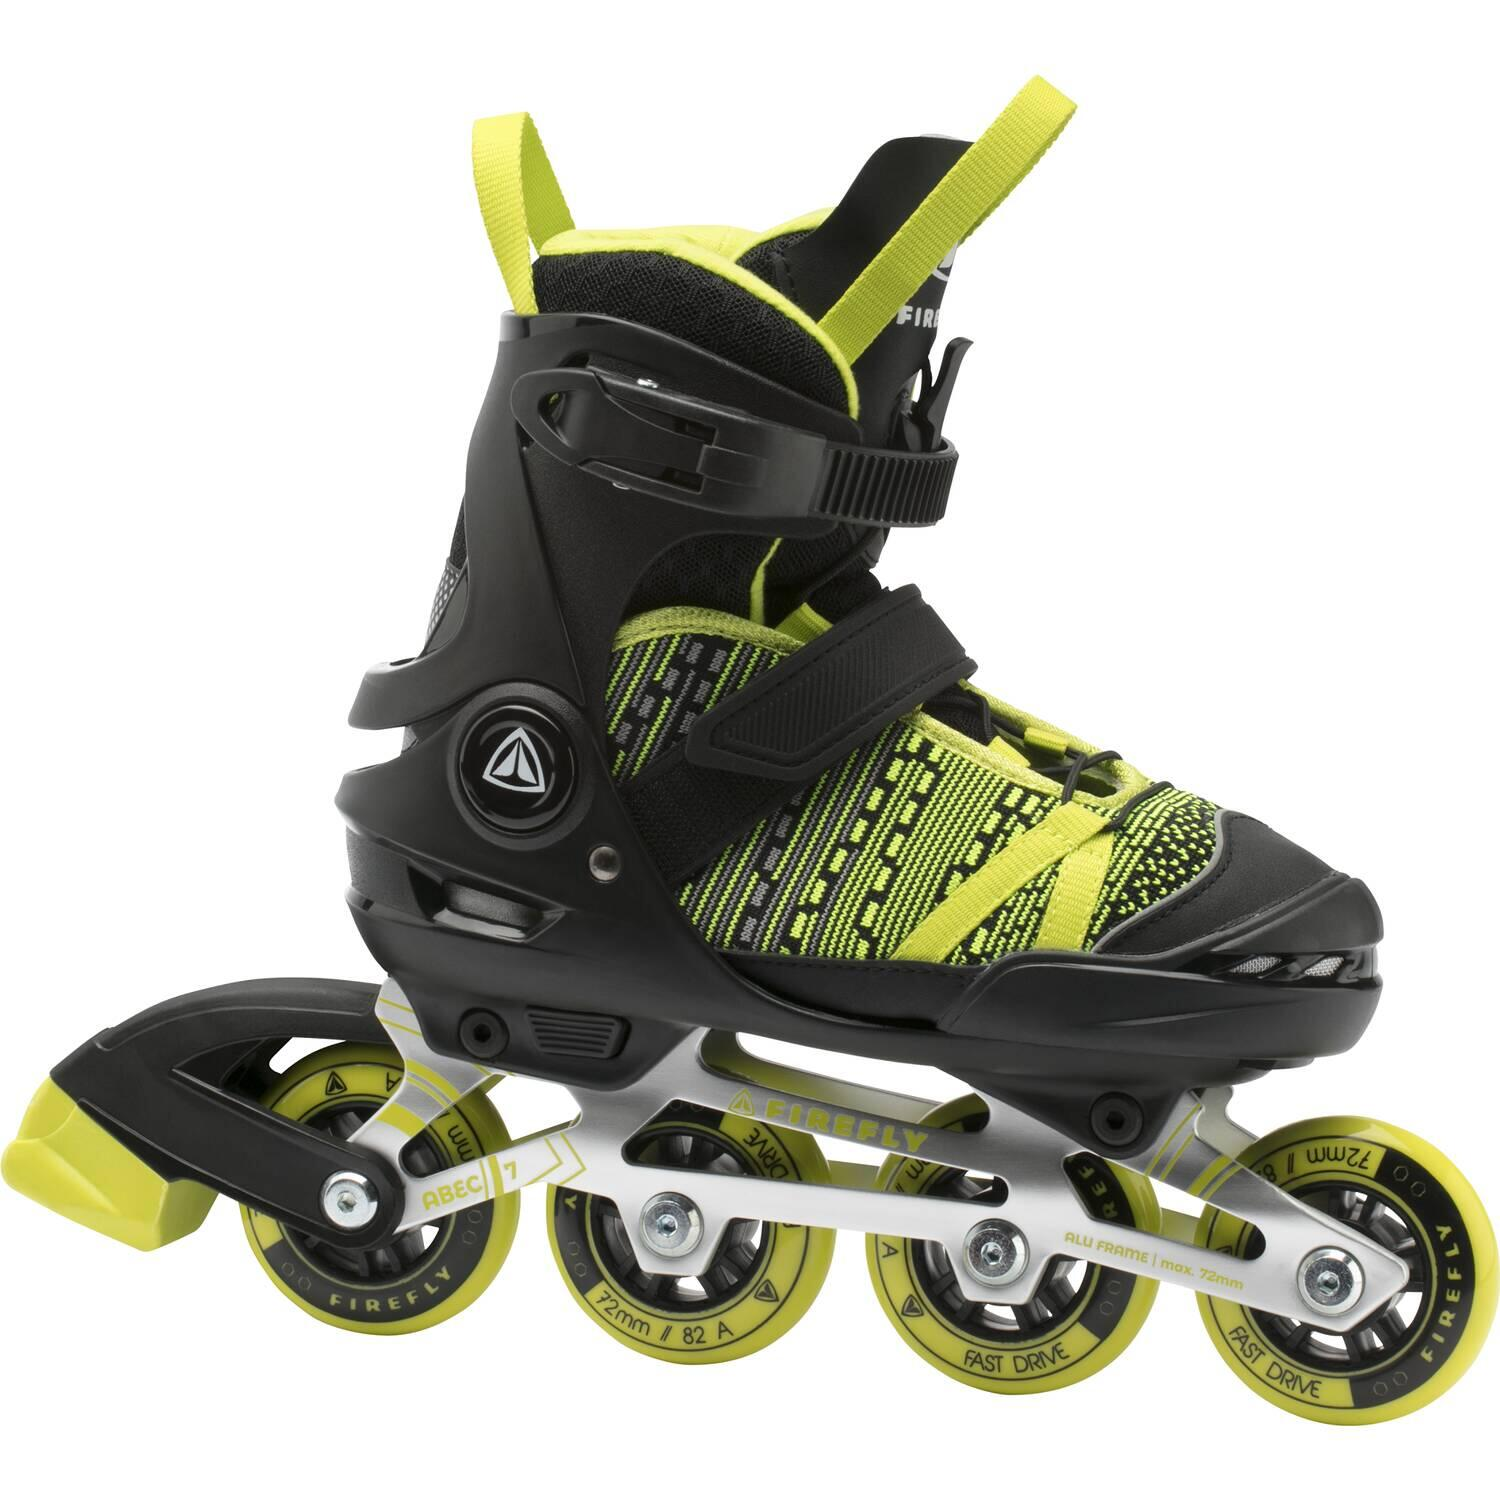 Firefly Kinder Inlineskate 710 Boy (Größe 33.0 36.0 (Rollen 72 mm), 901 black greenlight)